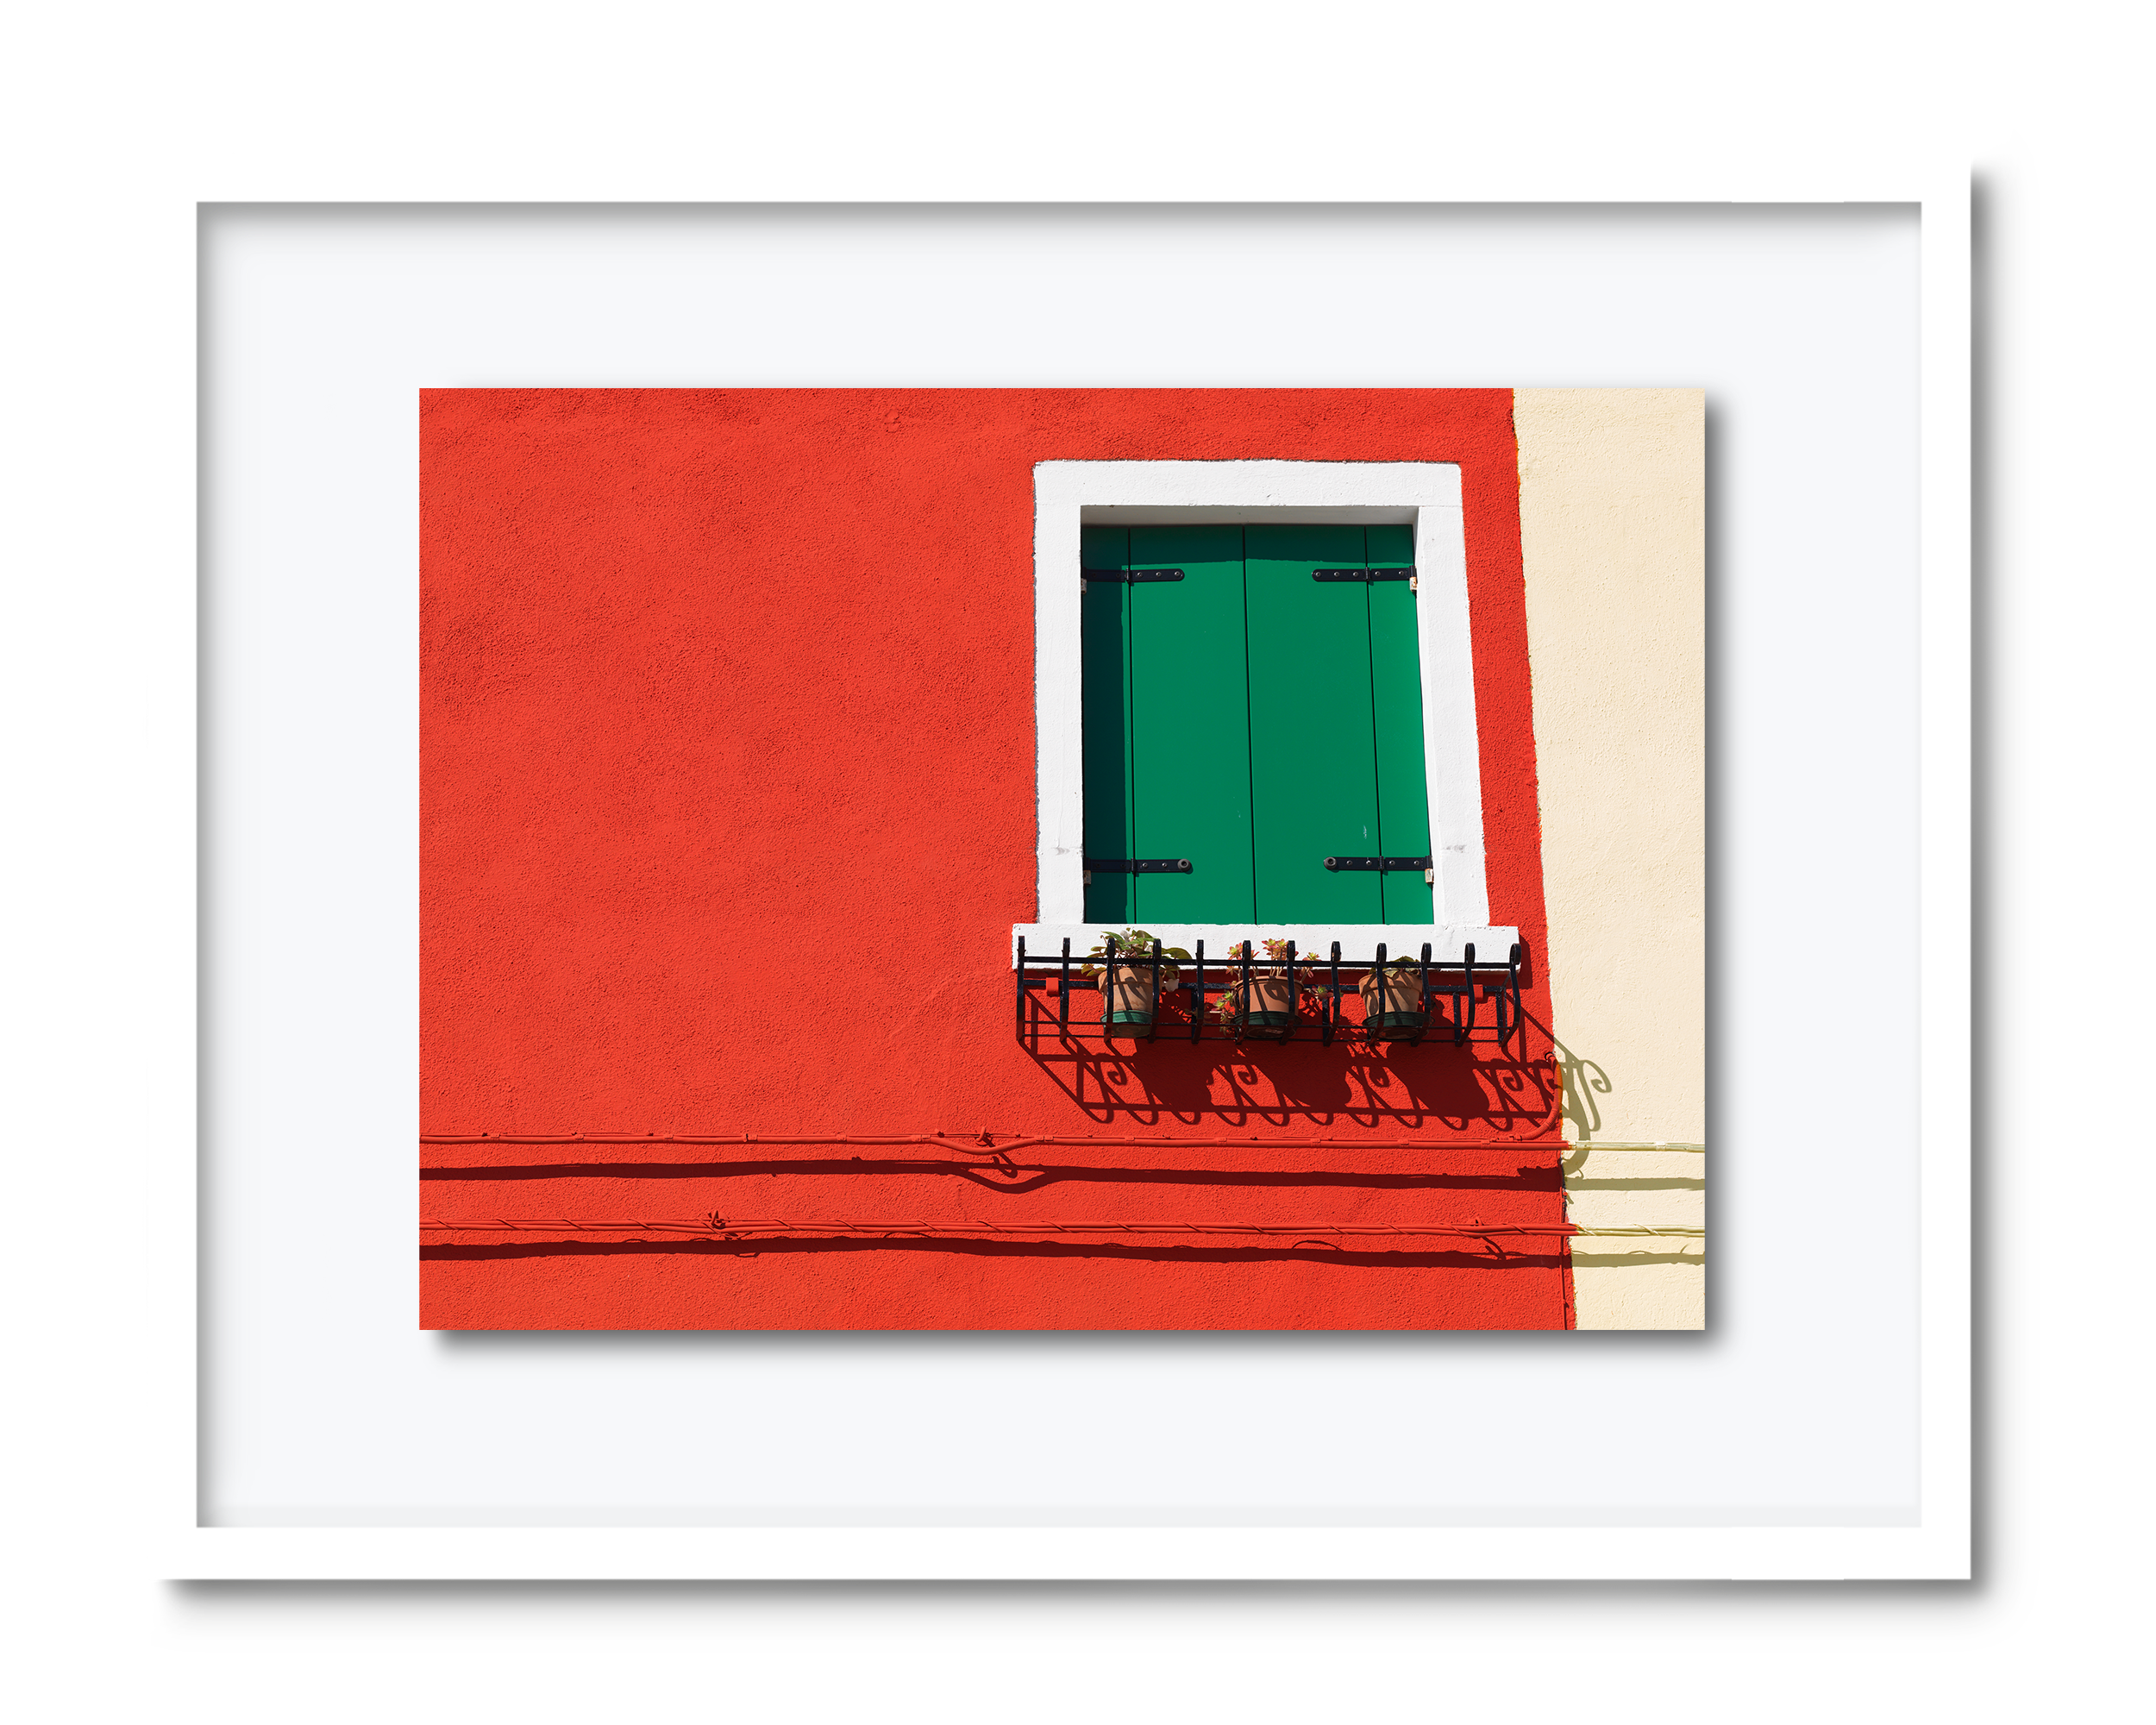 16.david-pearce-window- venice.png